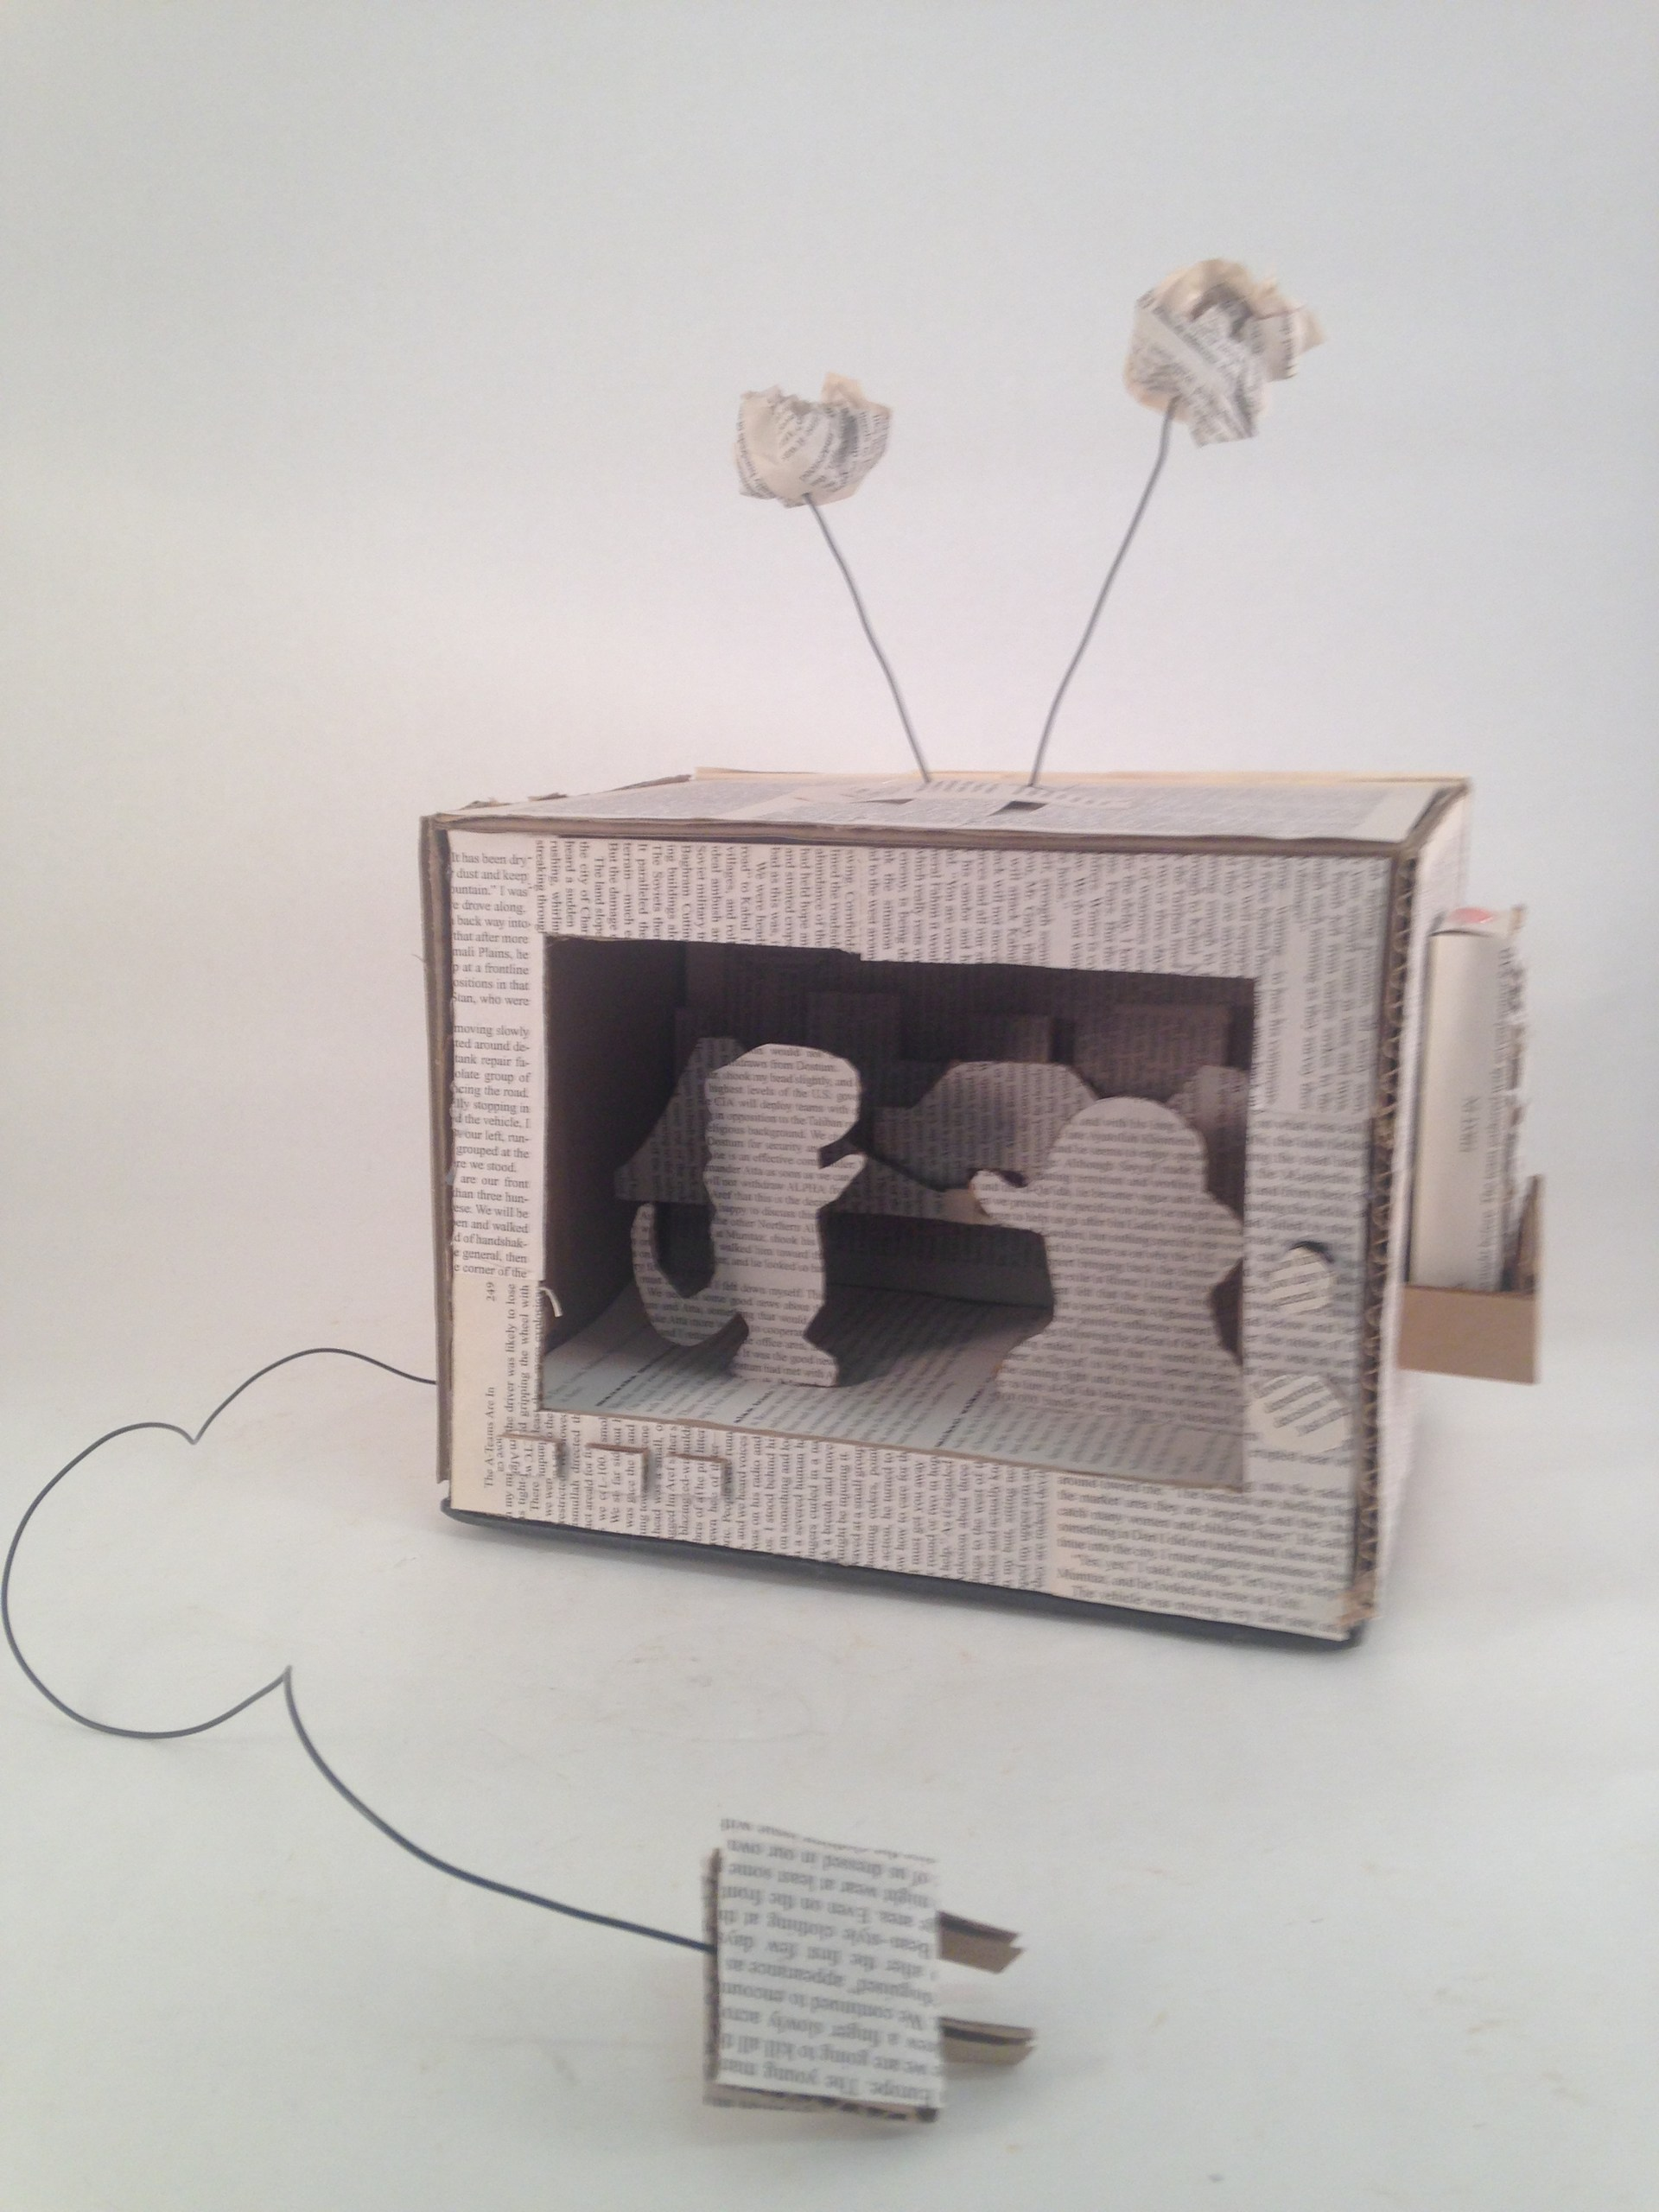 paper and cardboard sculpture of tv